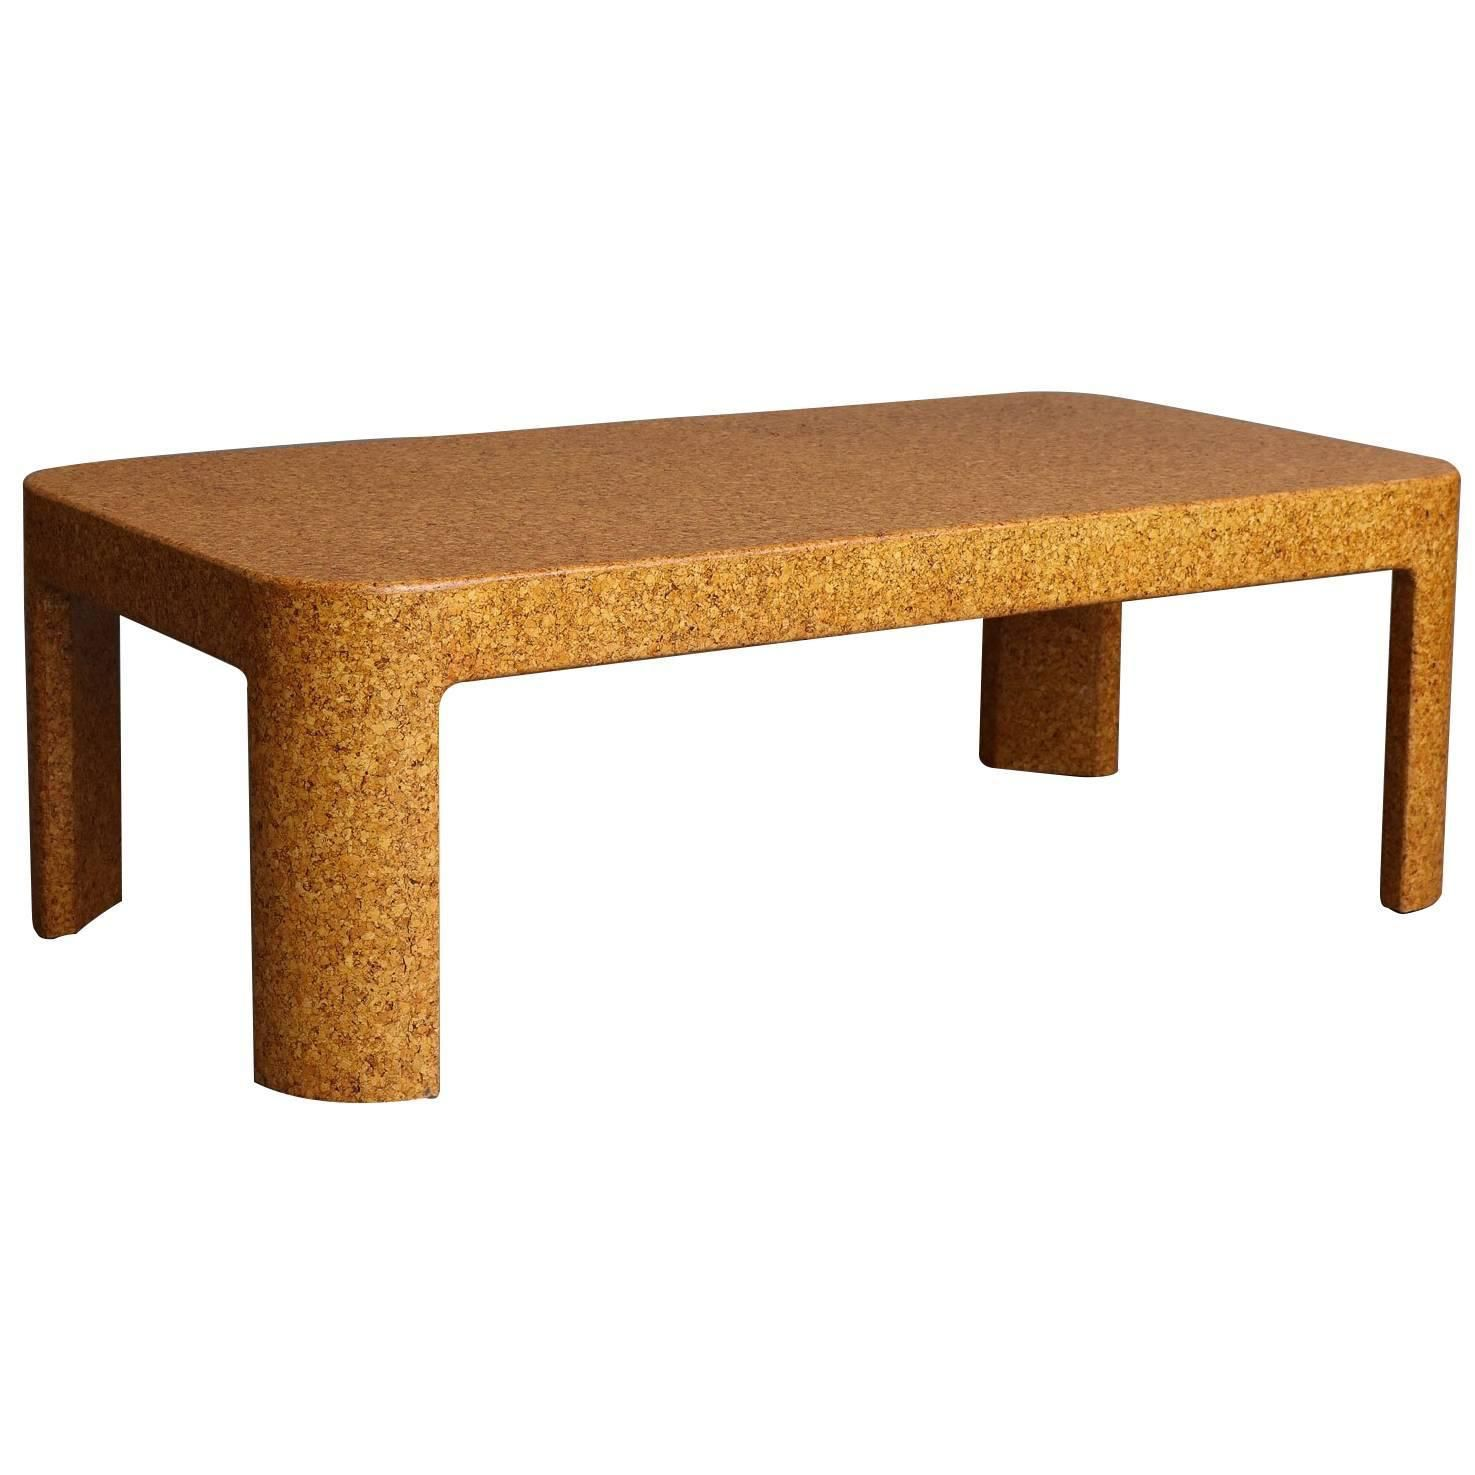 Samuel marx cork coffee table see more antique and modern coffee samuel marx cork coffee table see more antique and modern coffee and cocktail tables at geotapseo Gallery